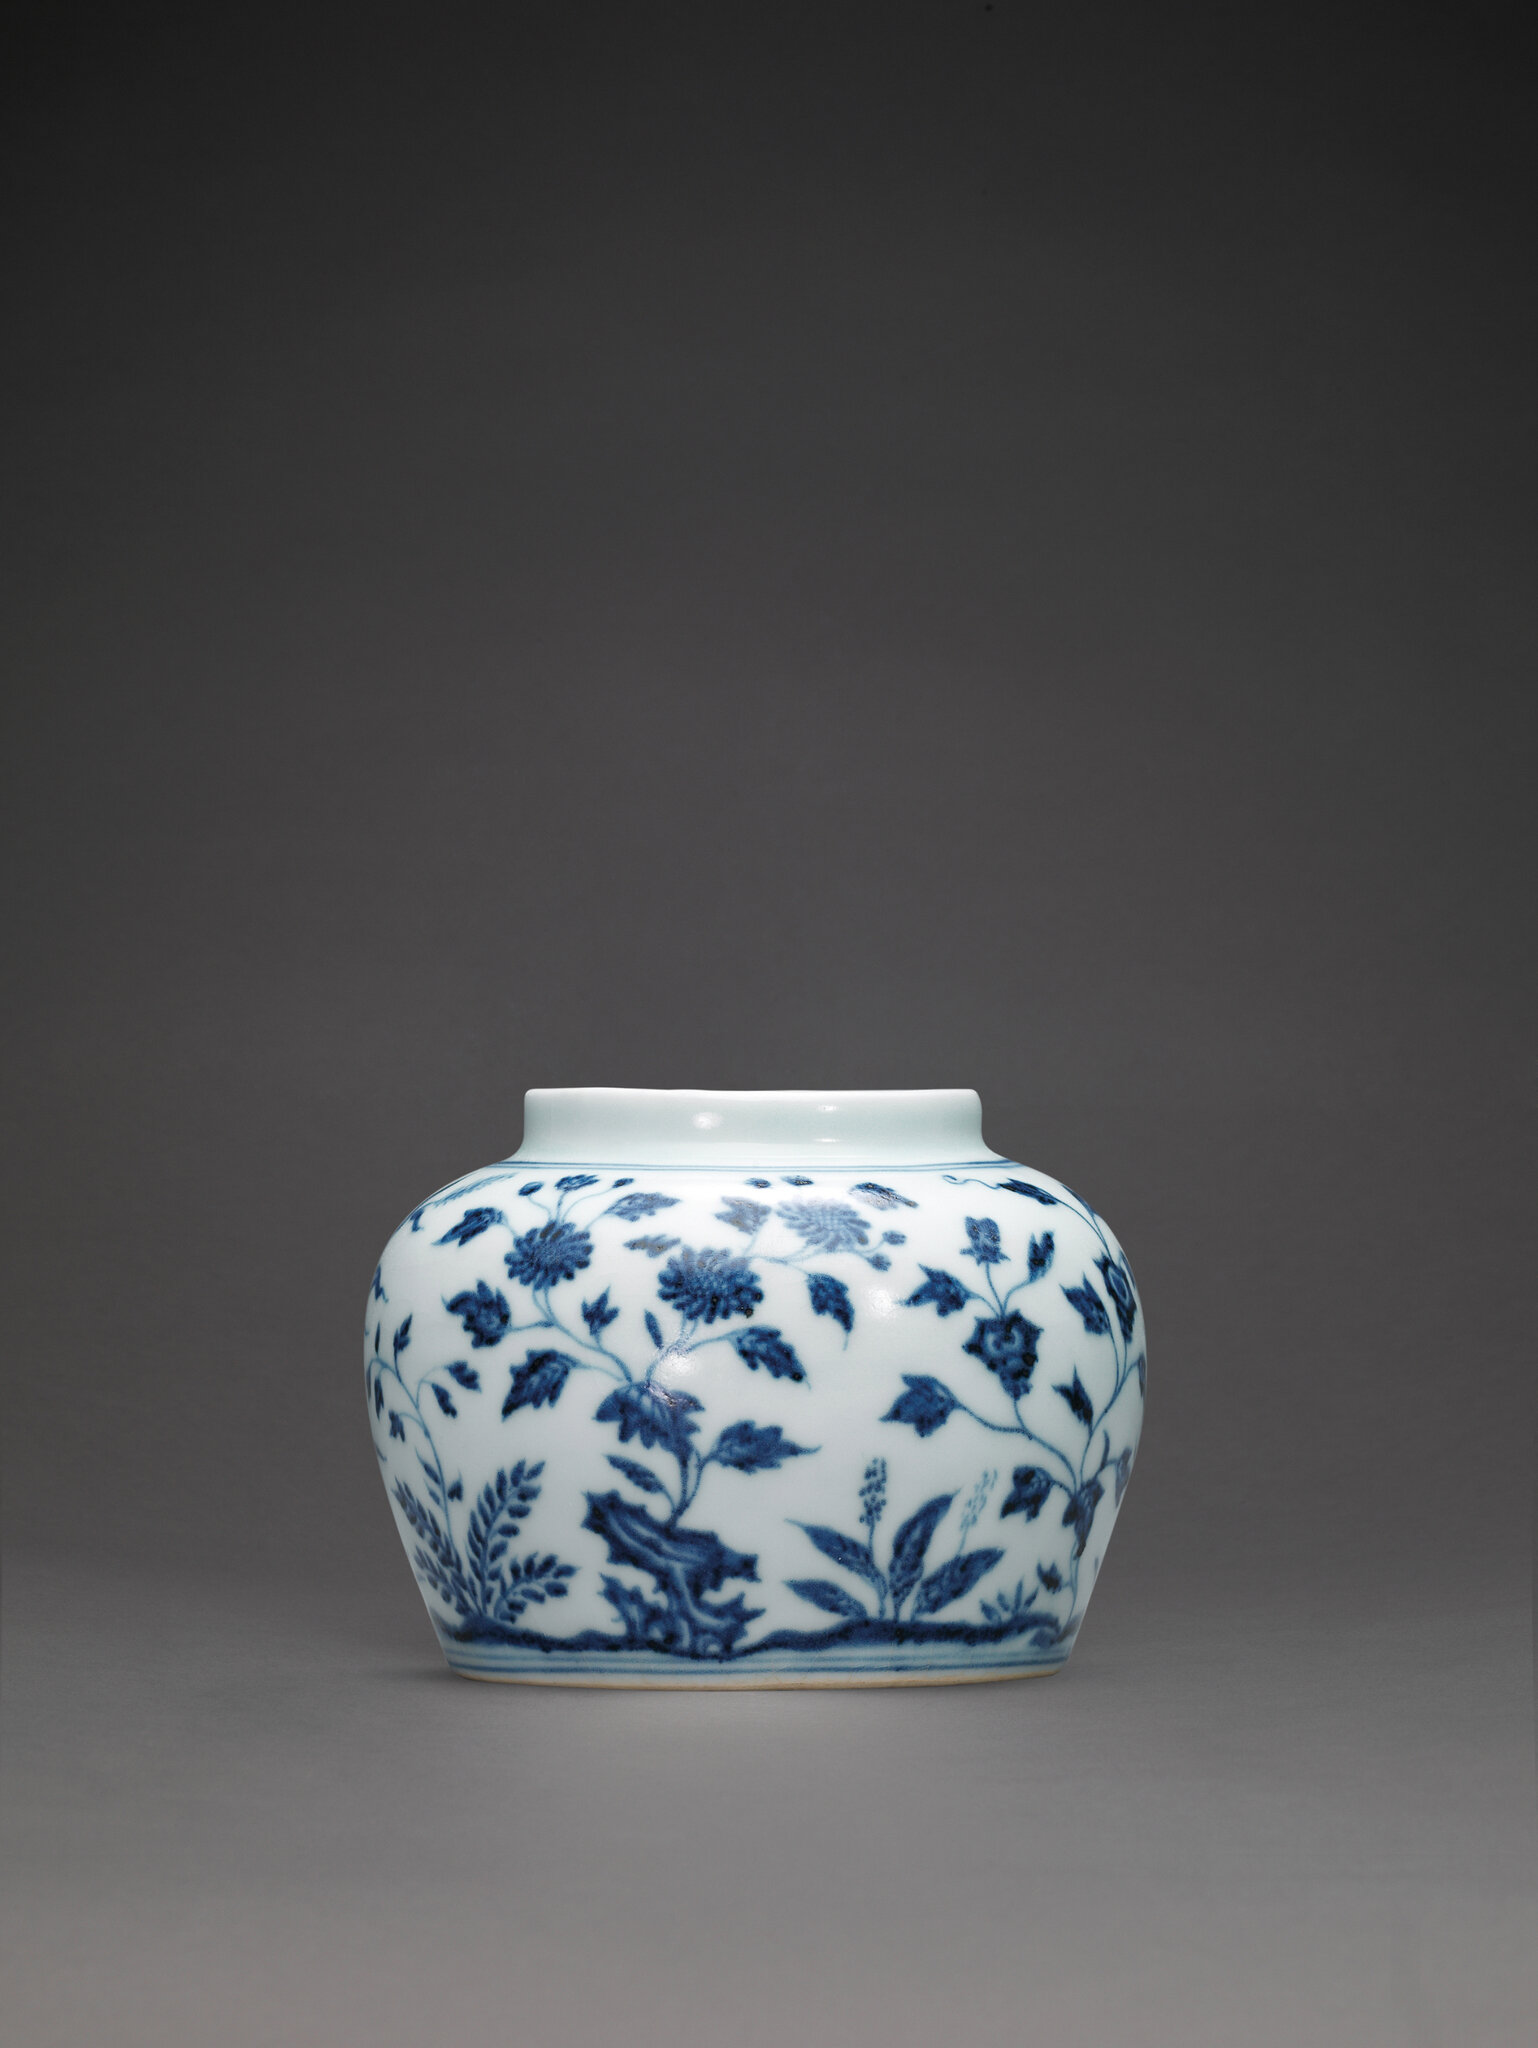 An extremely rare early Ming blue and white jar, guan, Yongle period (1403-1425)